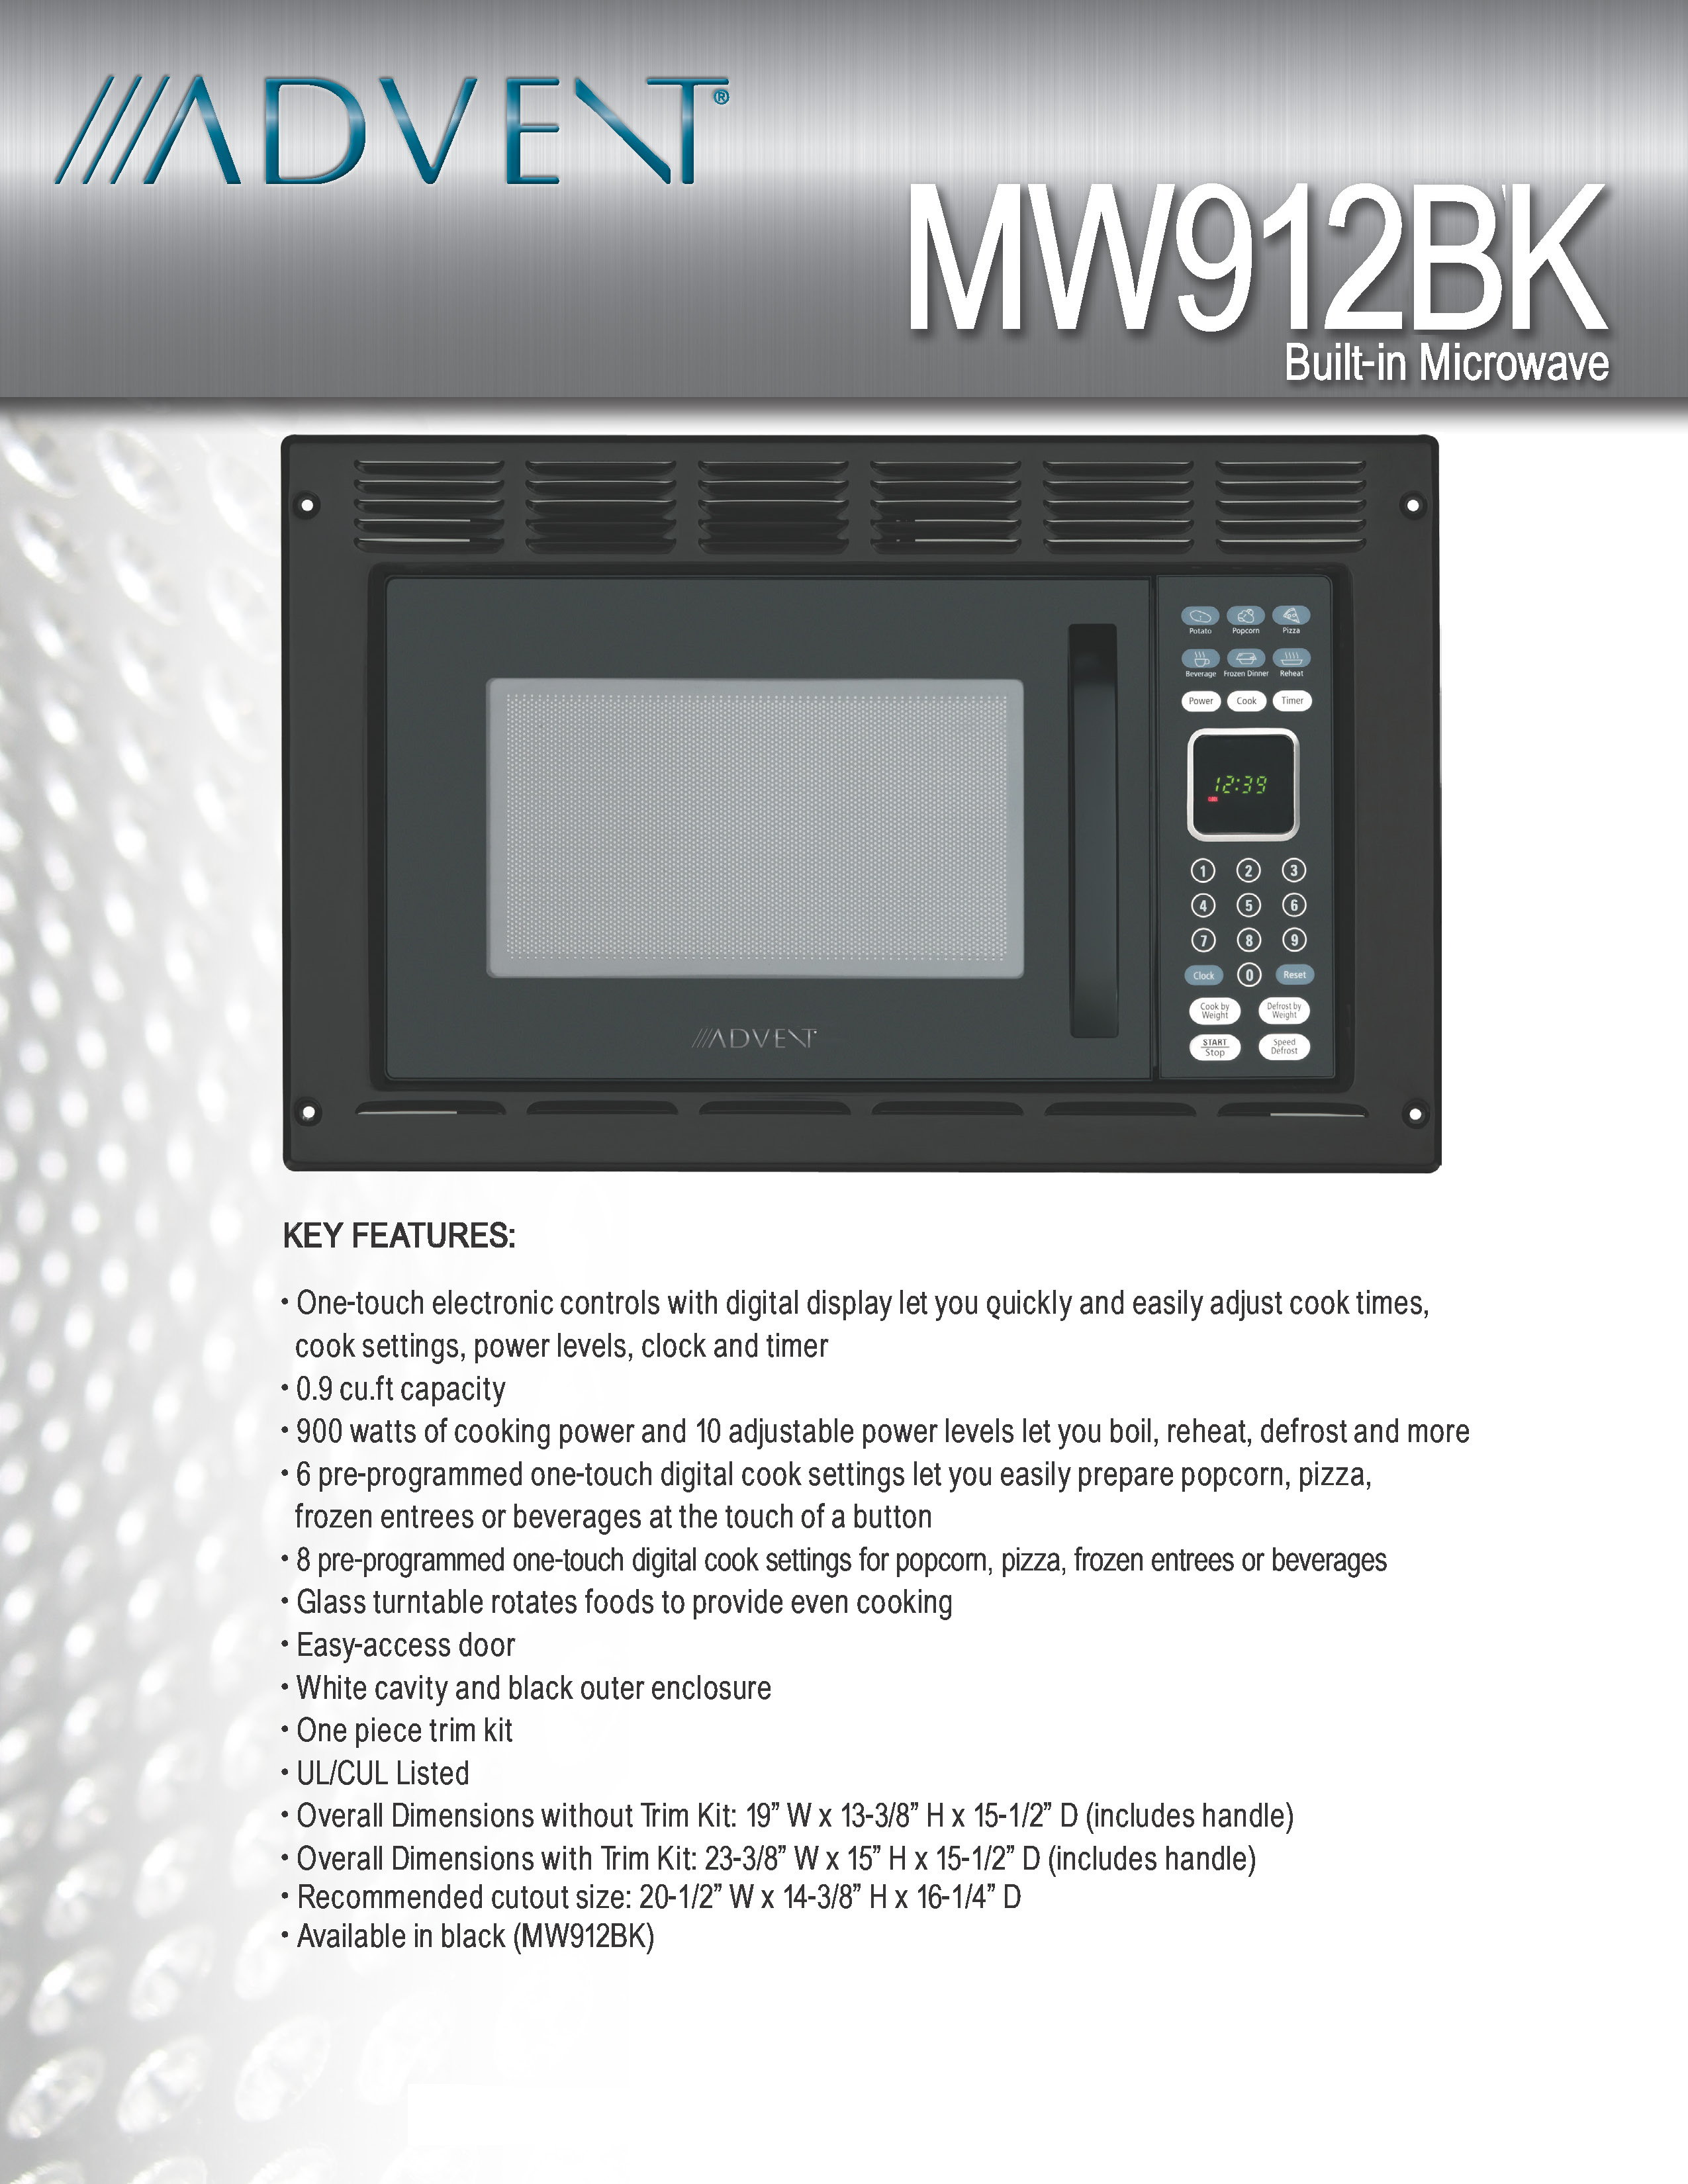 Advent MW912BK Black Built In Microwave Oven With Trim Kit, Specially Built  For RV, Recreational Vehicle, Trailer, Camper, Boat, Yacht, Motor Home  Etc., ...